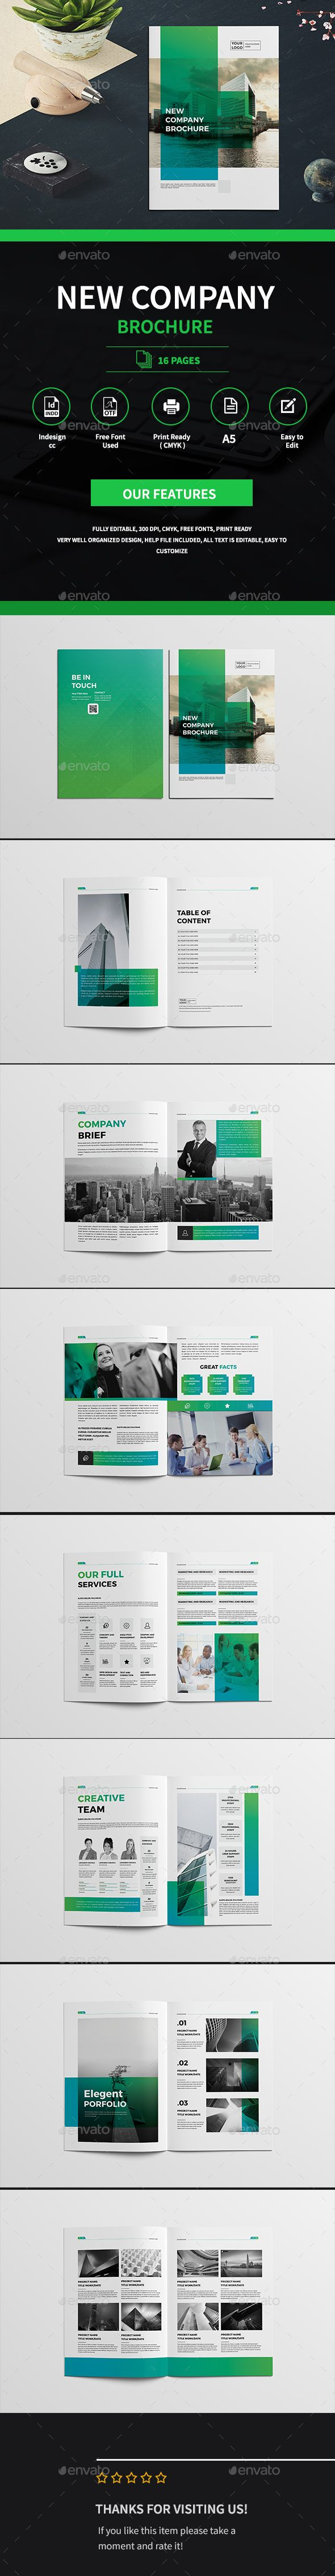 Business Company Brochure — InDesign INDD #clean catalogue #stylish • Download ➝ https://graphicriver.net/item/business-company-brochure/19412404?ref=pxcr